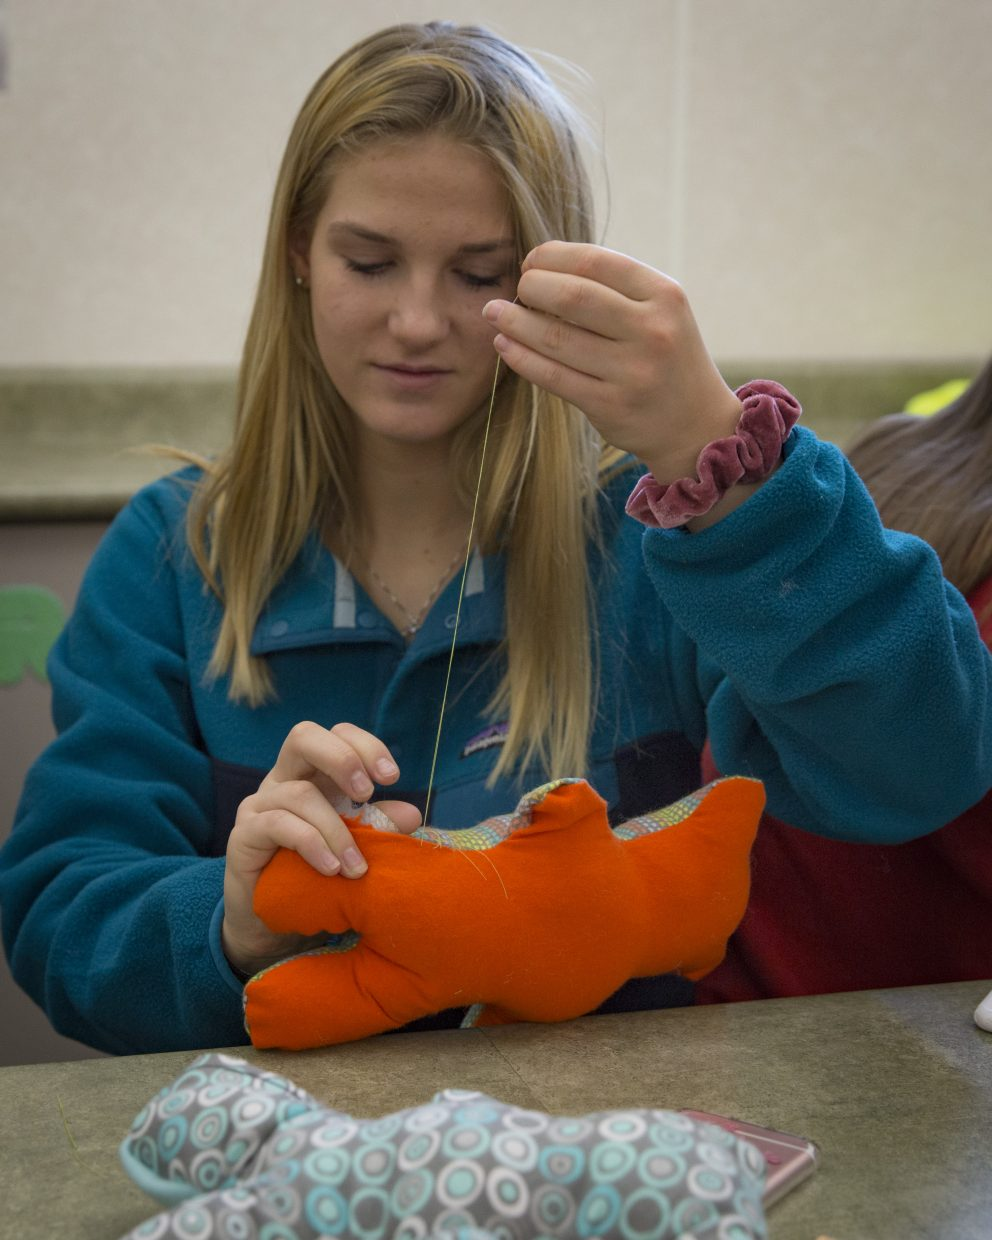 Jade Moffat, a Park City High School sophomore, stitches up the side of a handmade teddy bear during the Future Business Leaders of America's service event — Dolls of Hope — on Saturday, January 13, 2018. The event crafted the dolls to send to refugee kids. (Tanzi Propst/Park Record)